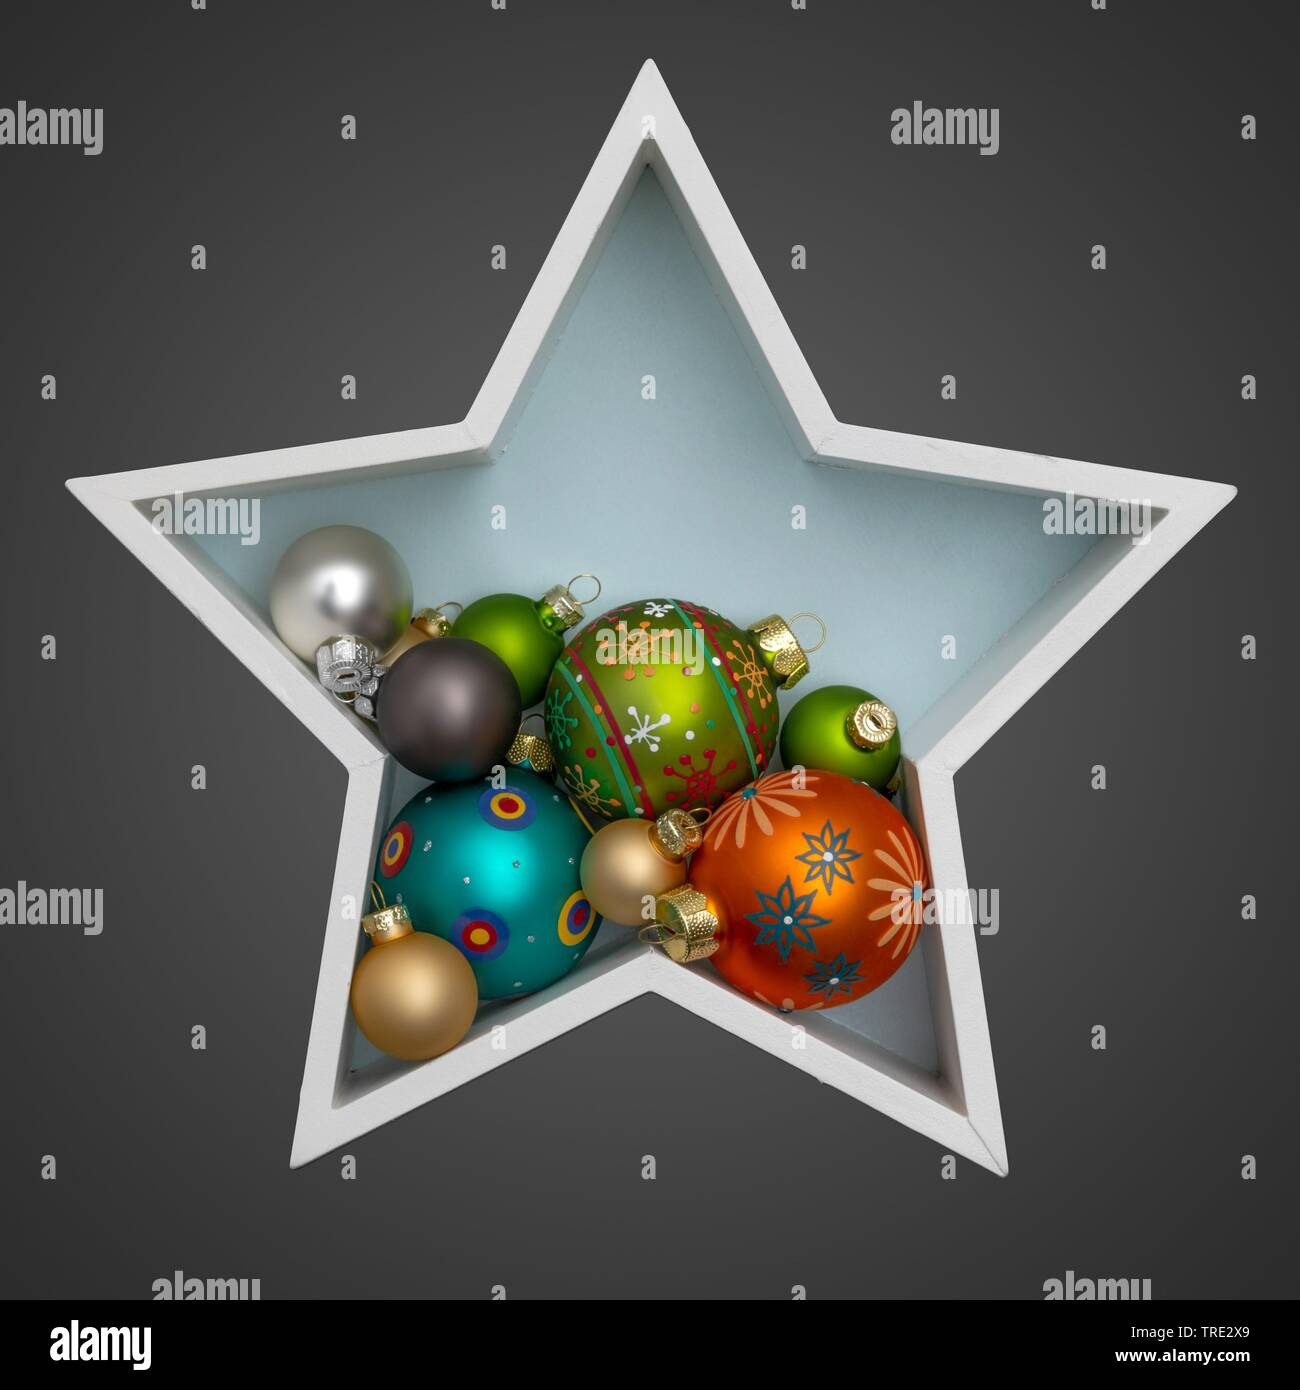 Christbaumkugeln Cappuccino.Sternfoermig Stock Photos Sternfoermig Stock Images Alamy